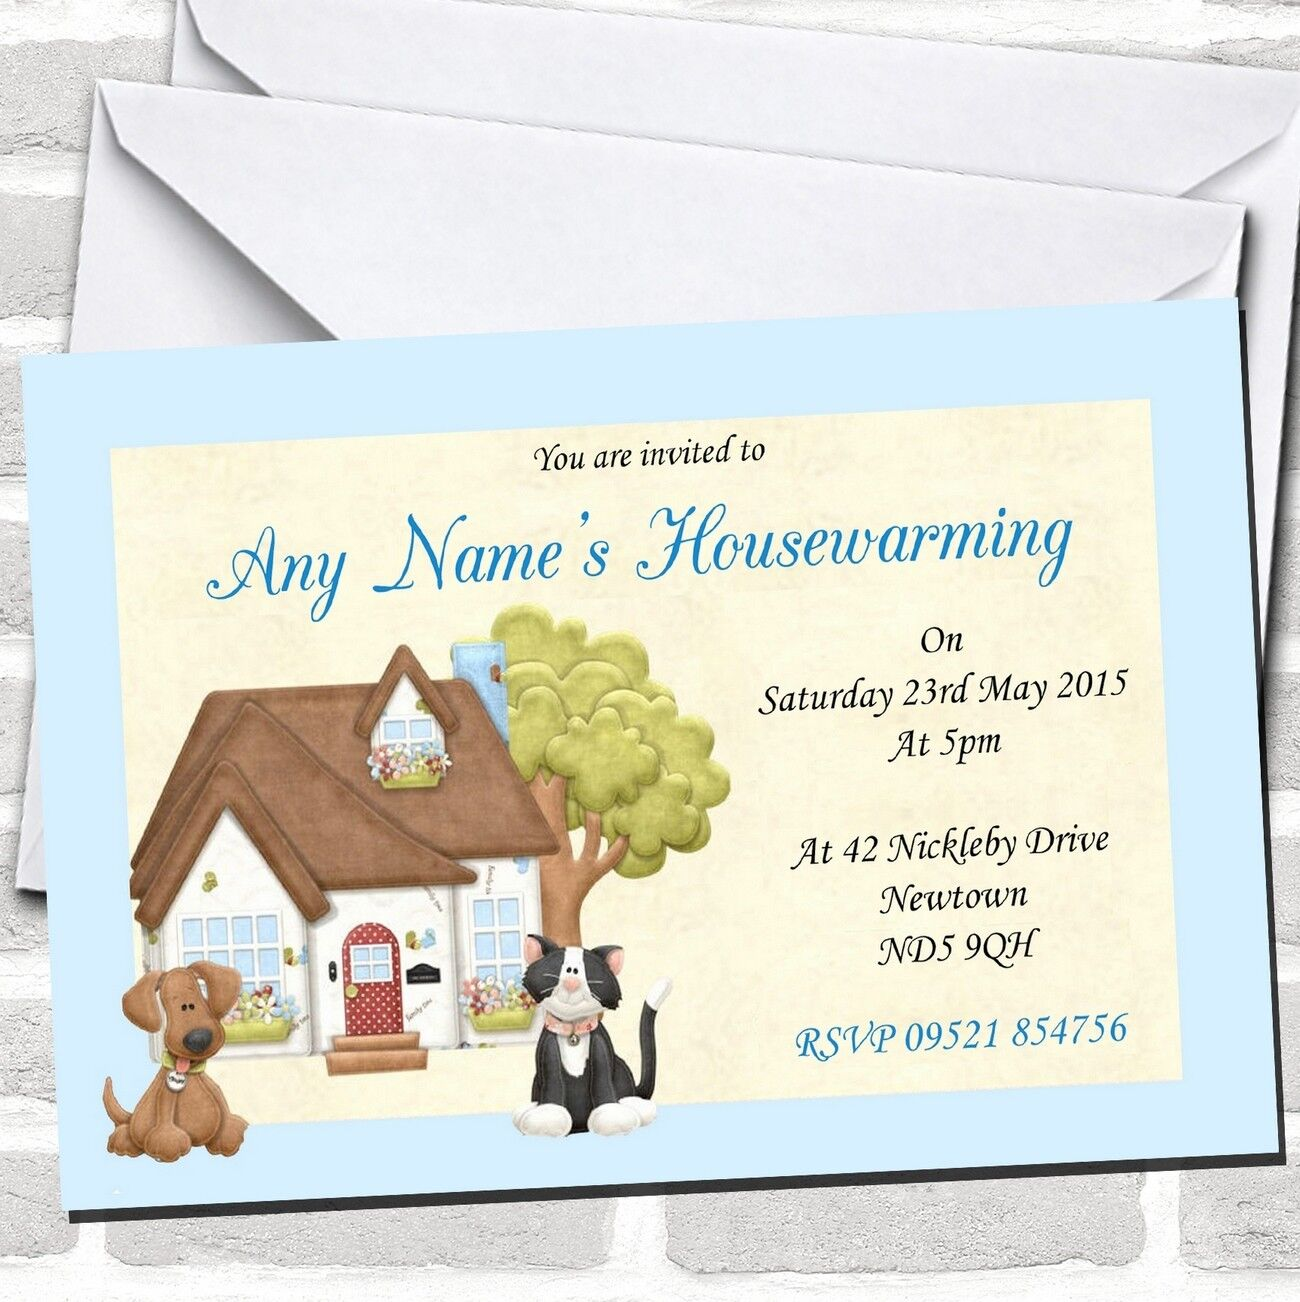 Dog And Cat Housewarming Housewarming Housewarming Party Invitations a0eeff